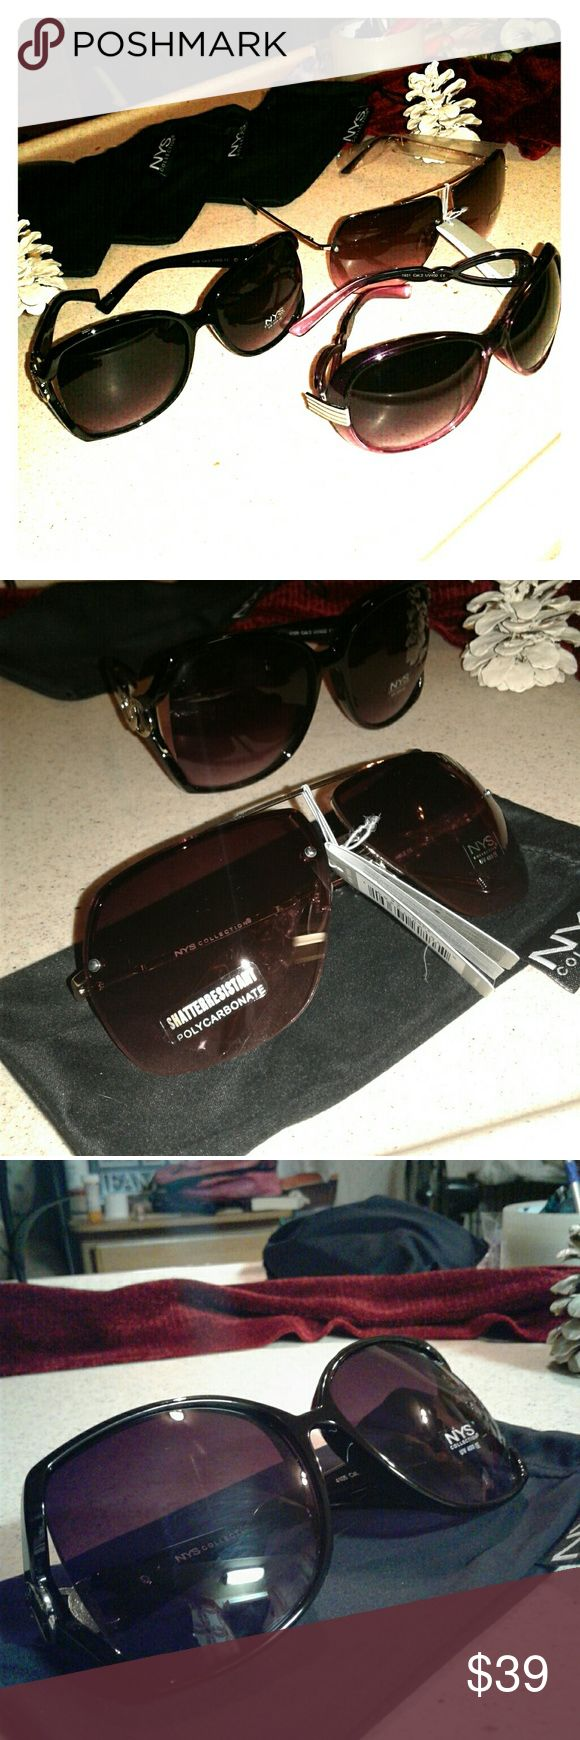 NYS sunglasses bundle UV 400 shatter proof lences, all brand new.  Have never been worn. Purple ones (round) the arm doesn't sit straight when sat on table.  But nothing actually wrong w the glasses. Very cute. NYC Accessories Glasses